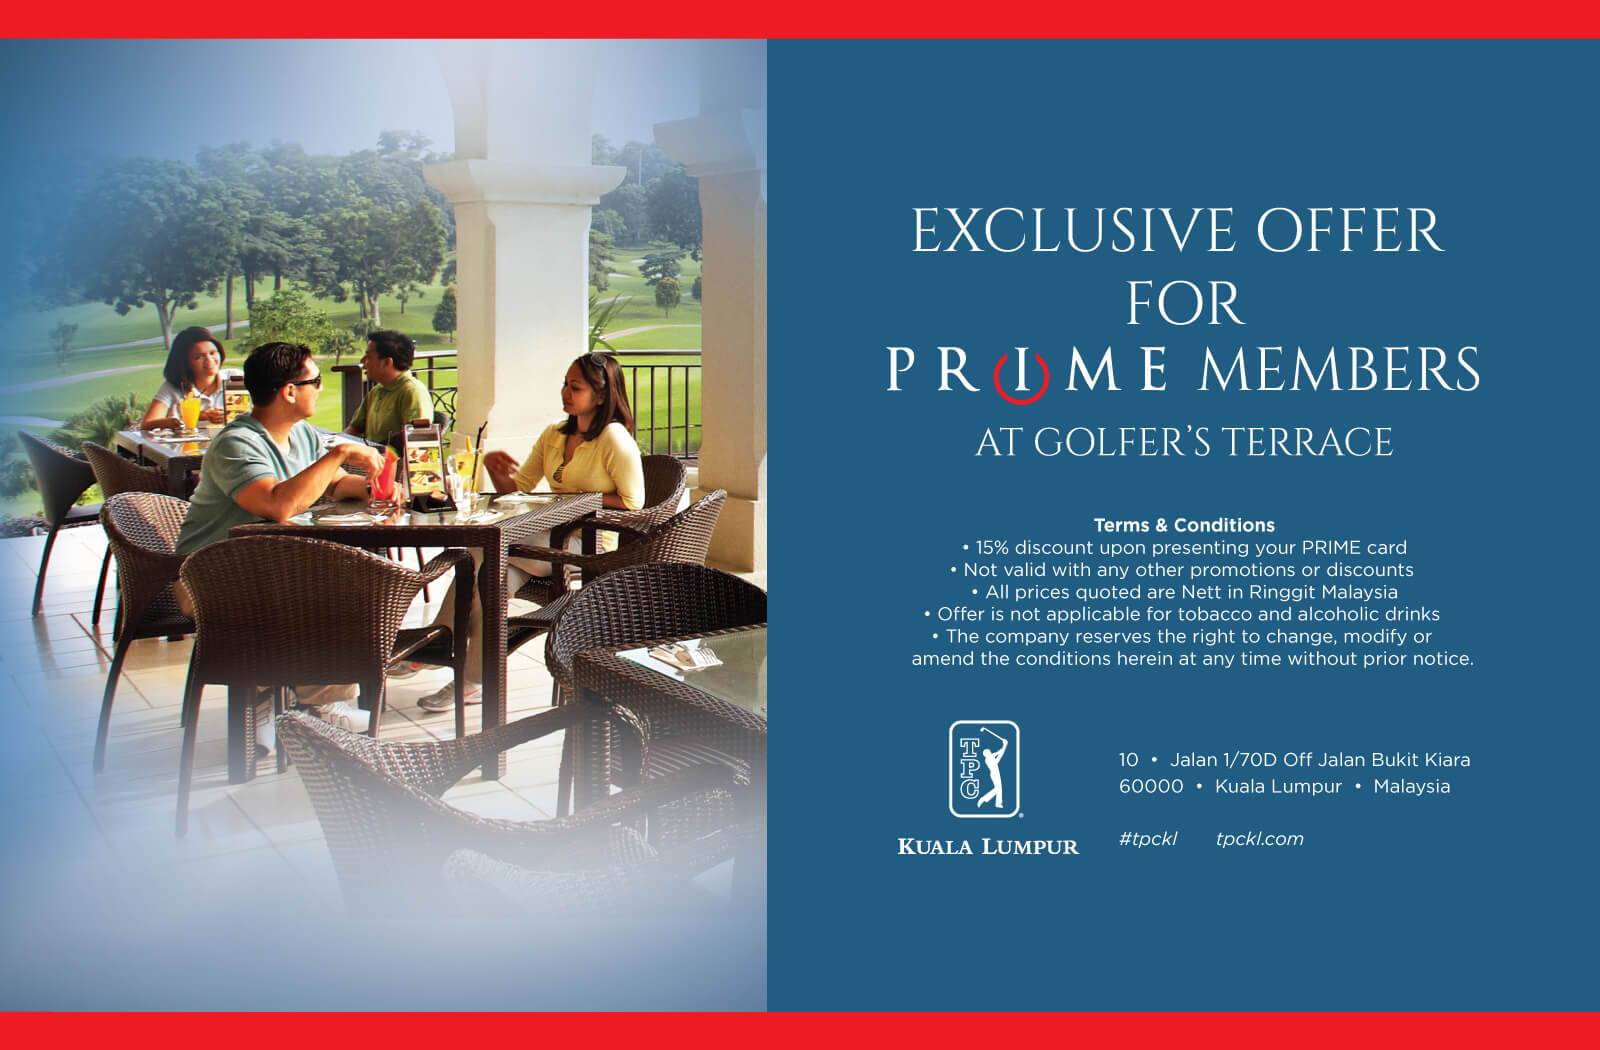 Exclusive offer for PRIME members at Golfer's Terrace